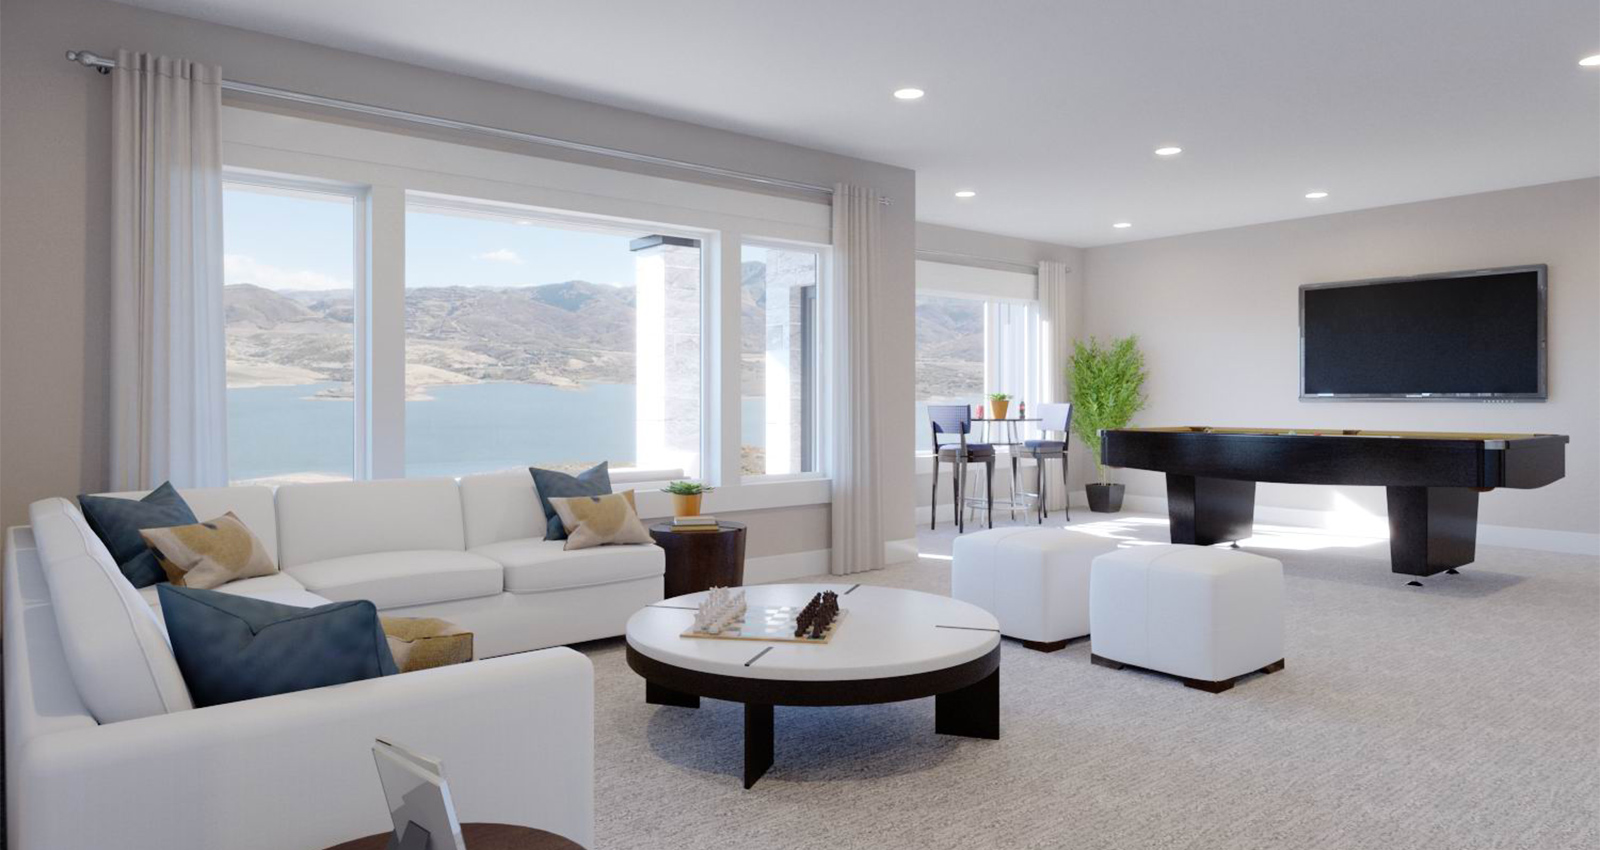 lake and mountain view from luxury townhome living room